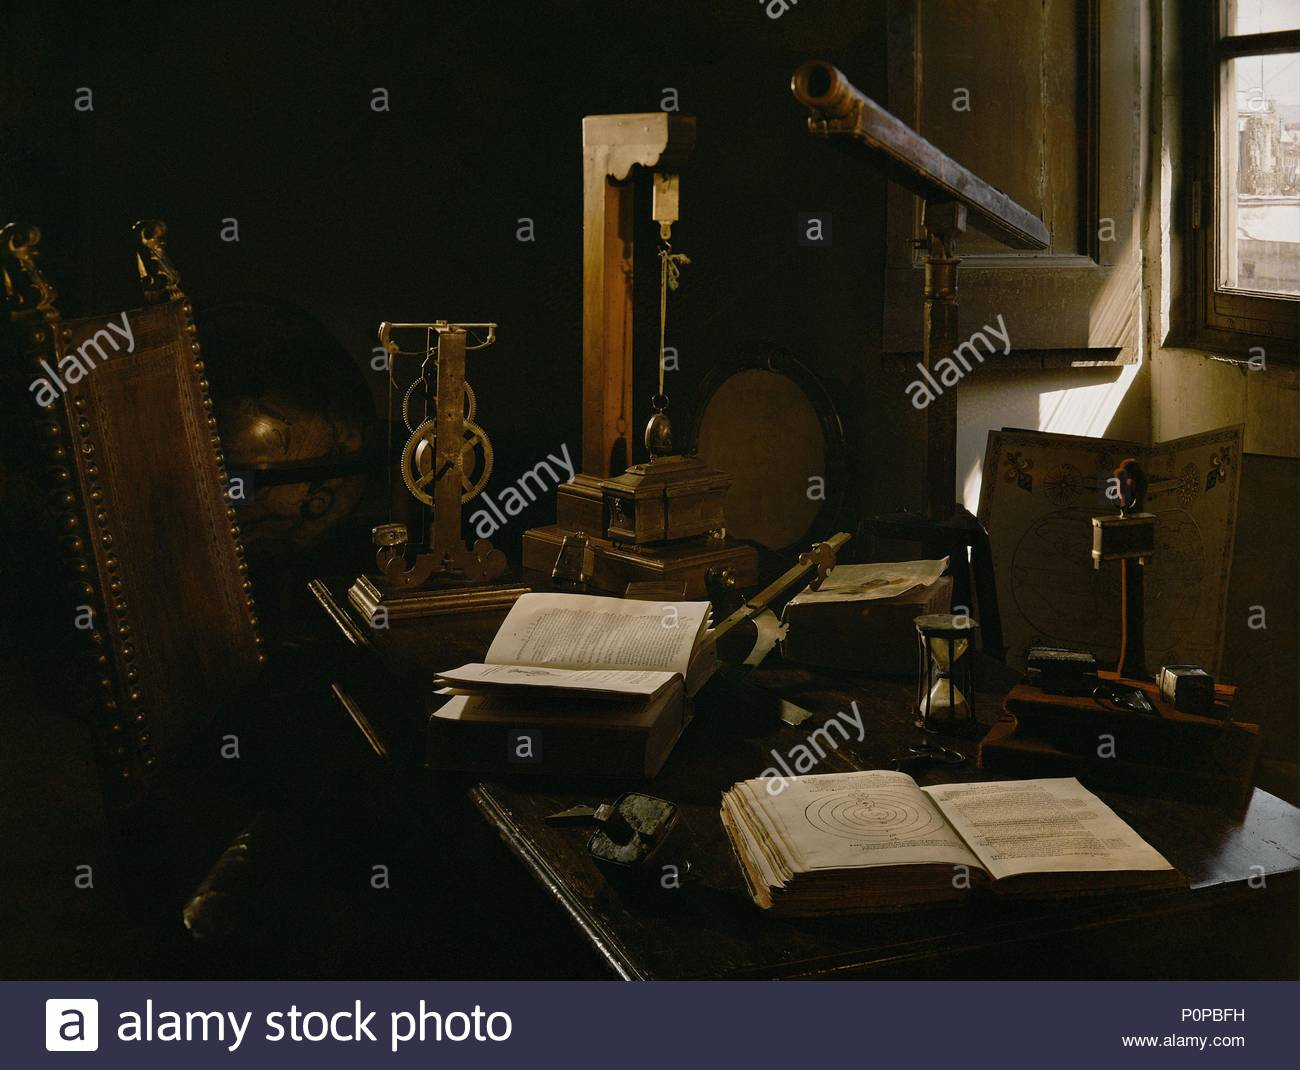 Galileo galilei and telescope stock photos & galileo galilei and